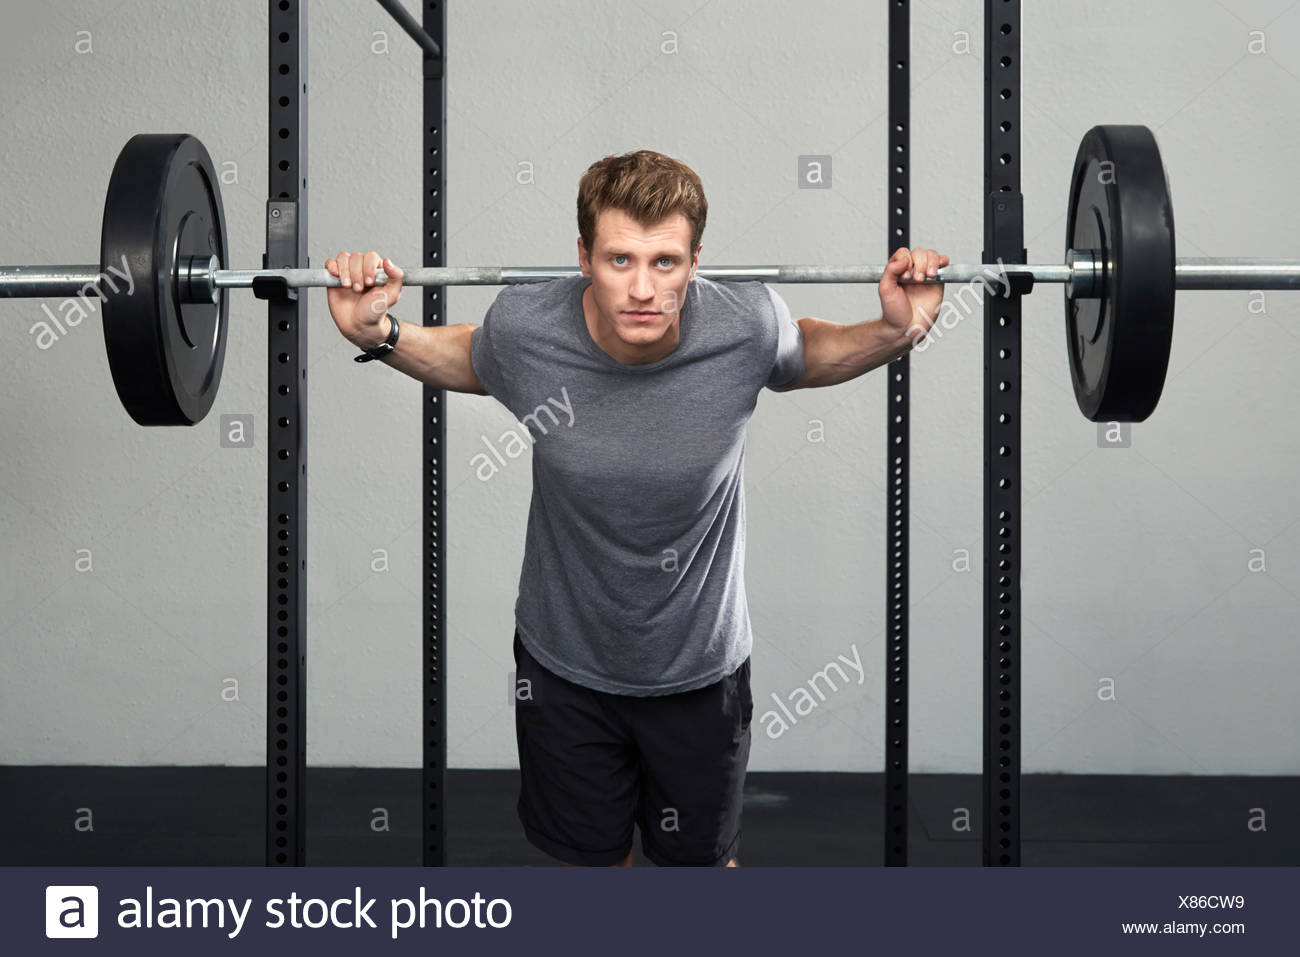 Portrait of mid adult male weightlifter lifting barbell in gym - Stock Image